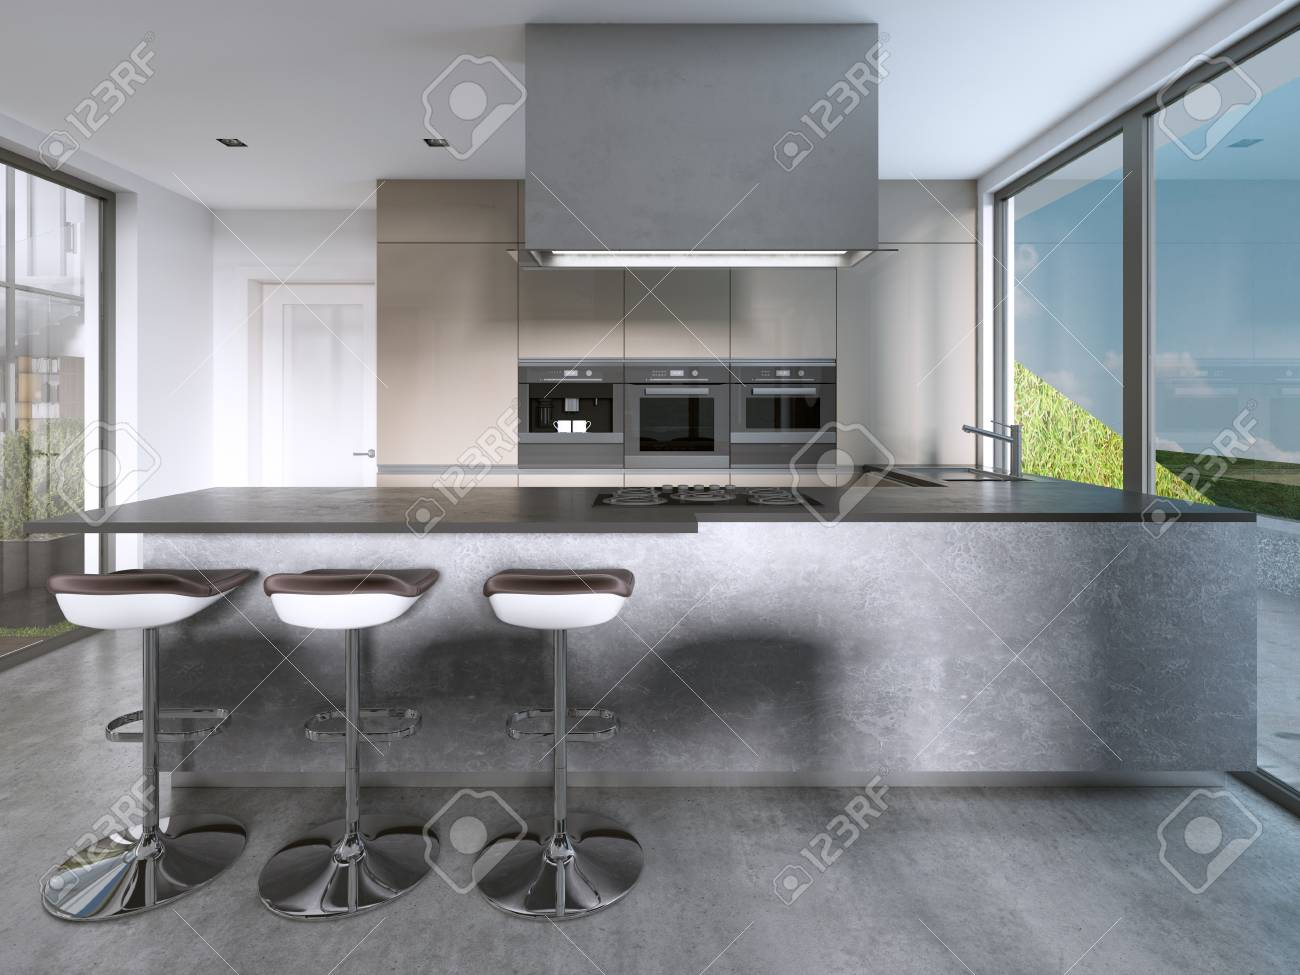 Contemporary kitchen with large windows and island with bar stools...